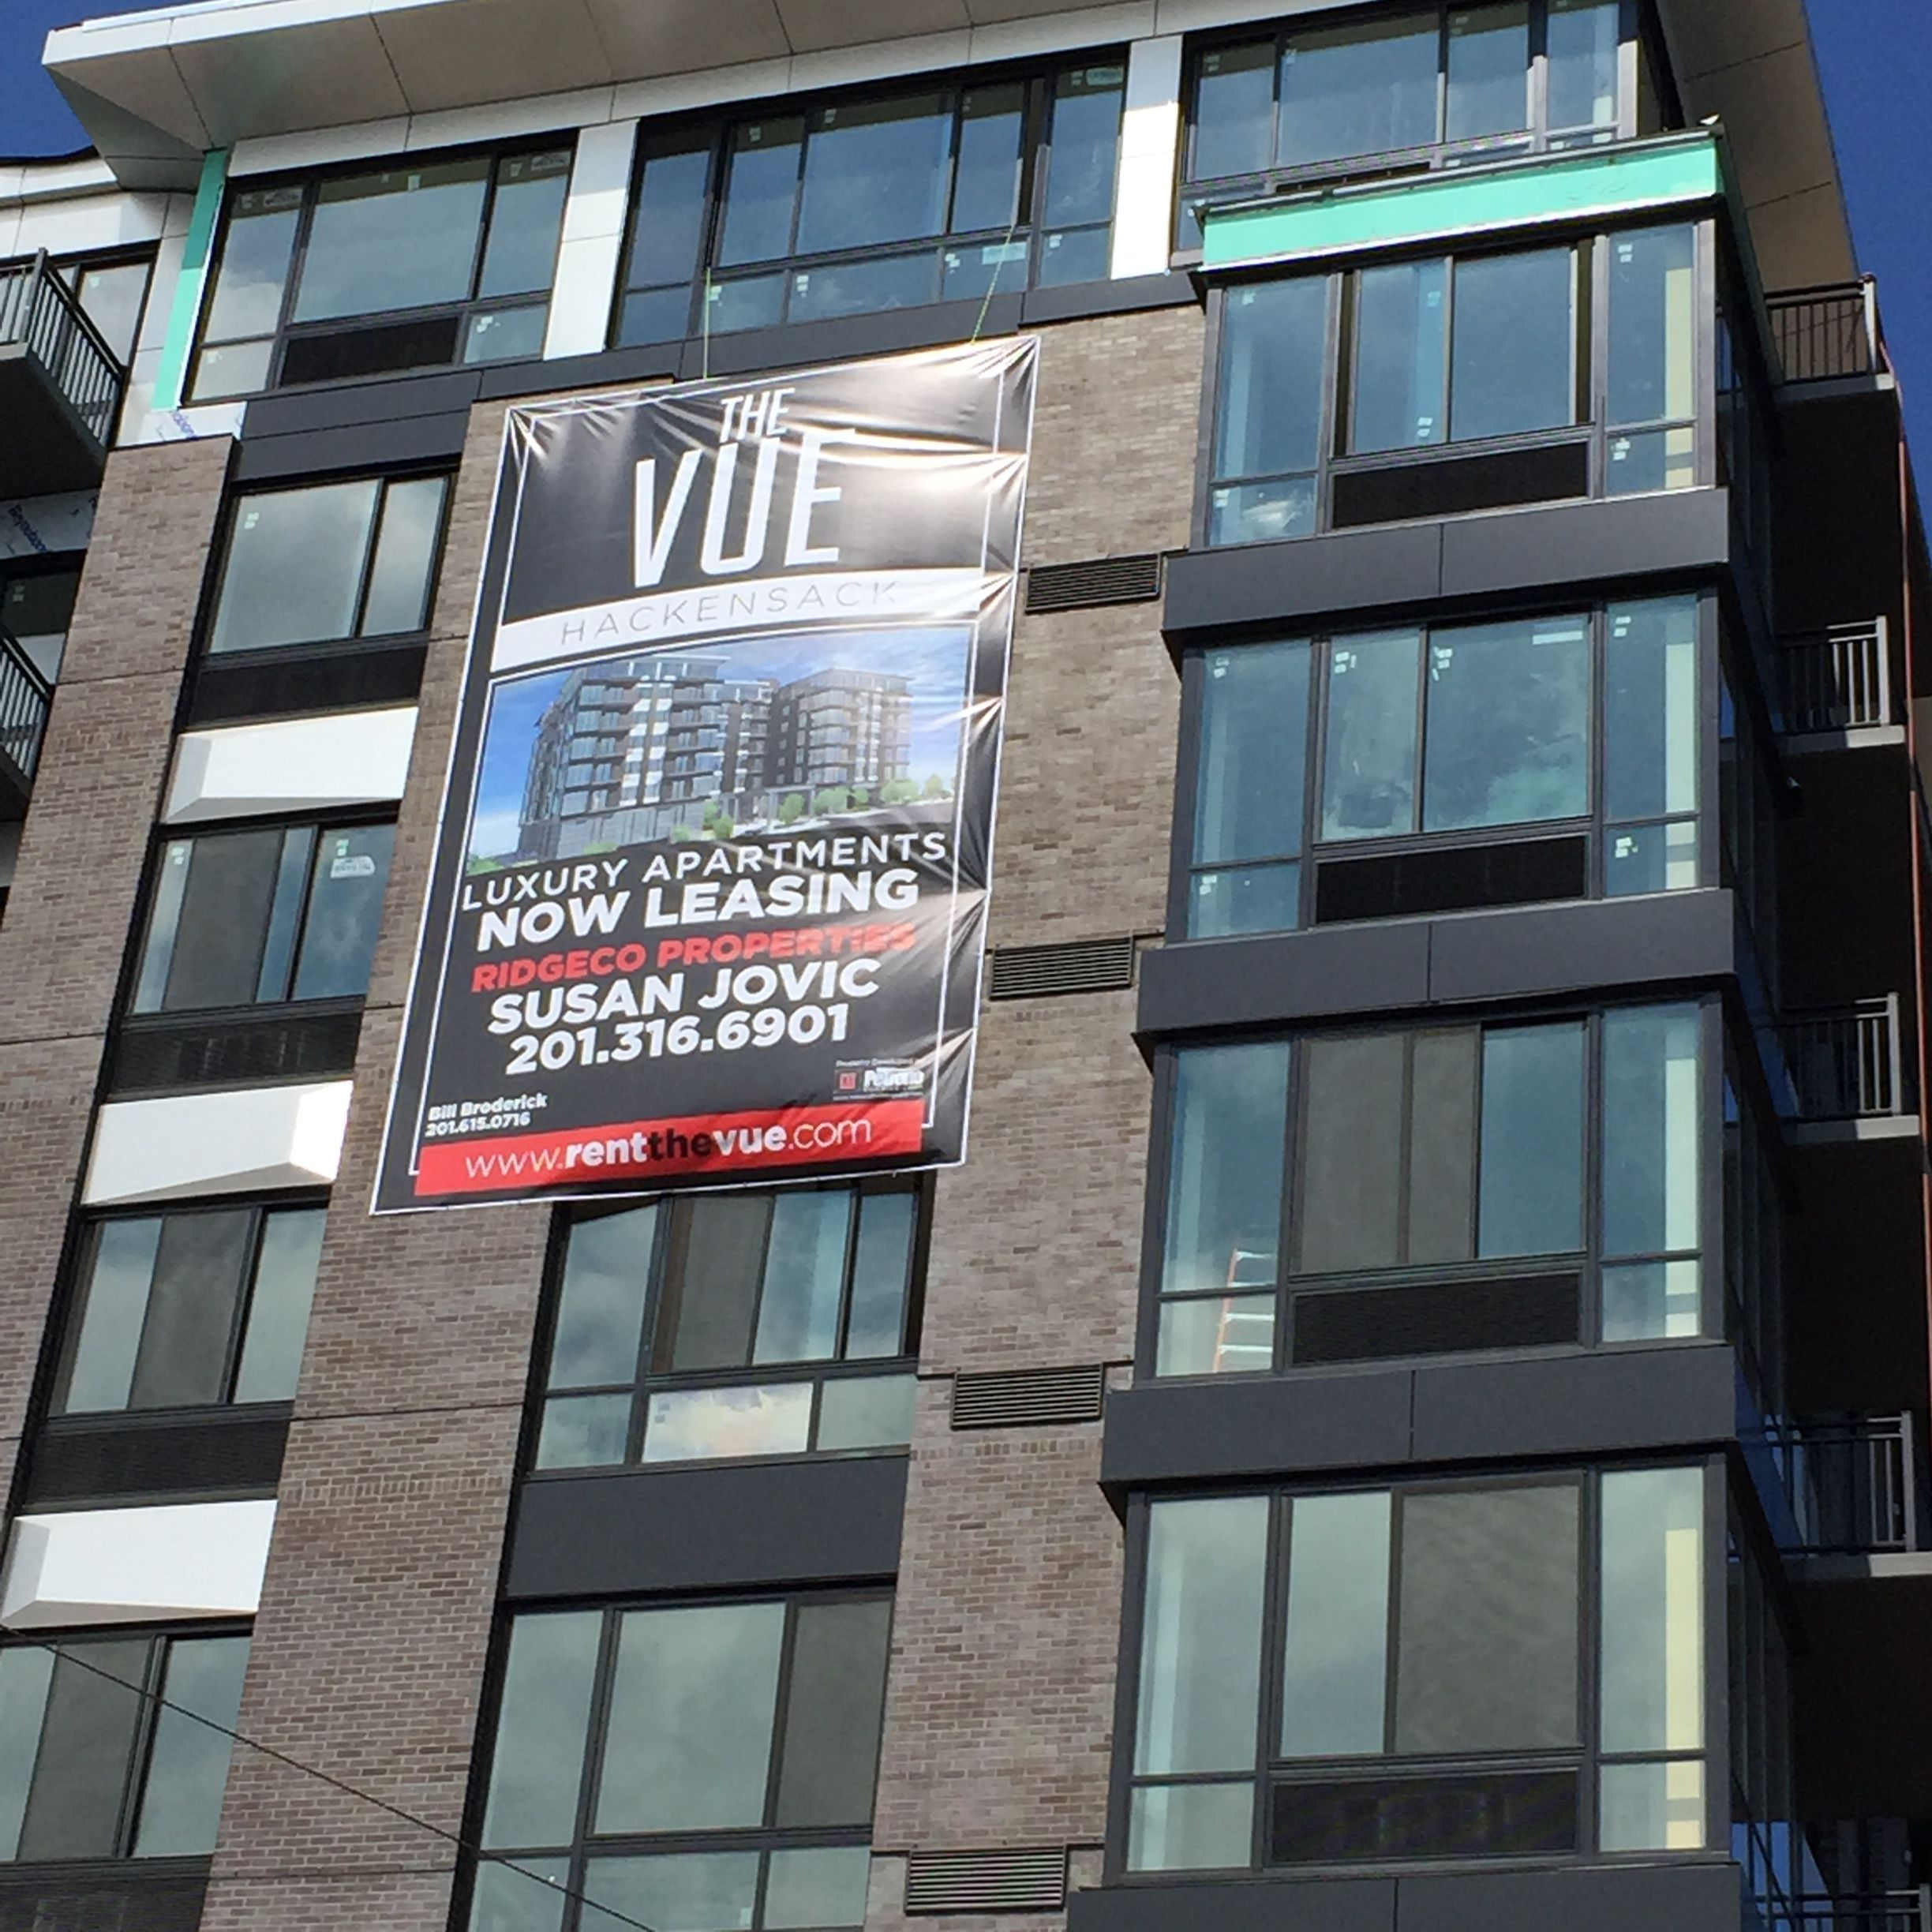 Pin By Speedpro Imaging Piscataway On Banners Posters Signs Luxury Apartments Luxury Building